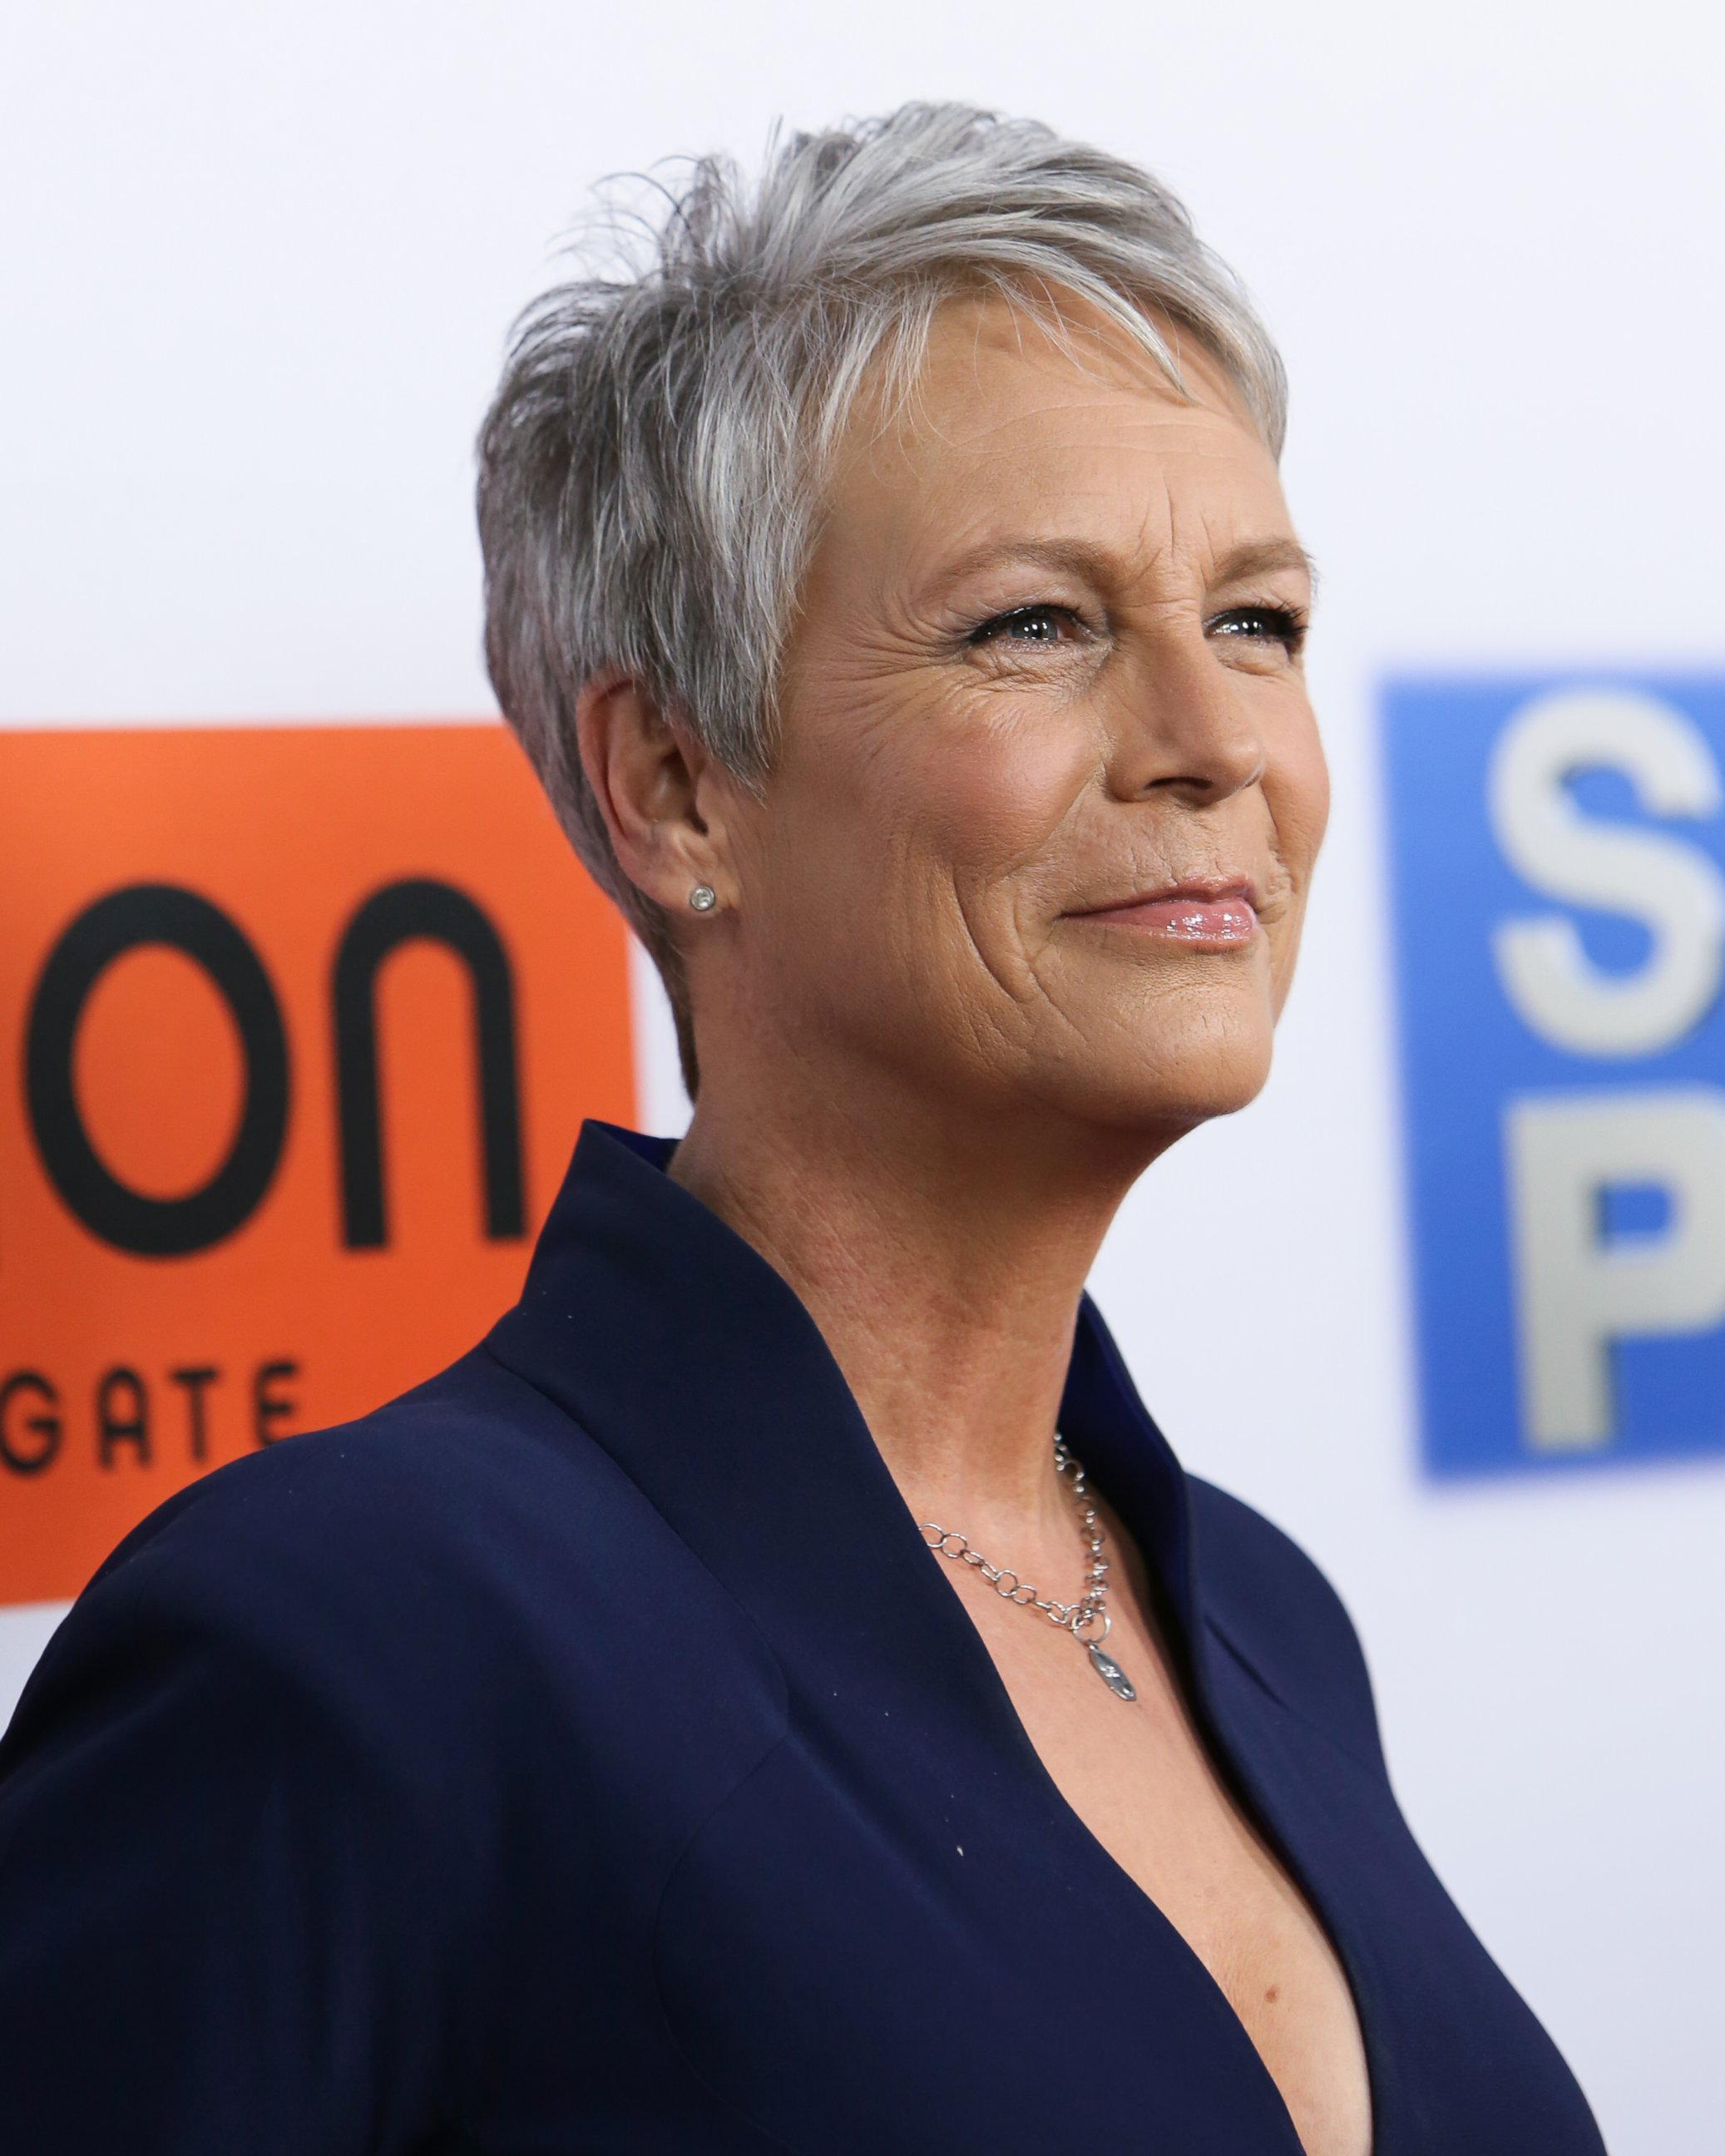 Jamie Lee Curtis Actress True Lies Jamie Lee Curtis was born on November 22 1958 in Los Angeles California the daughter of legendary actors Janet Leigh and Tony